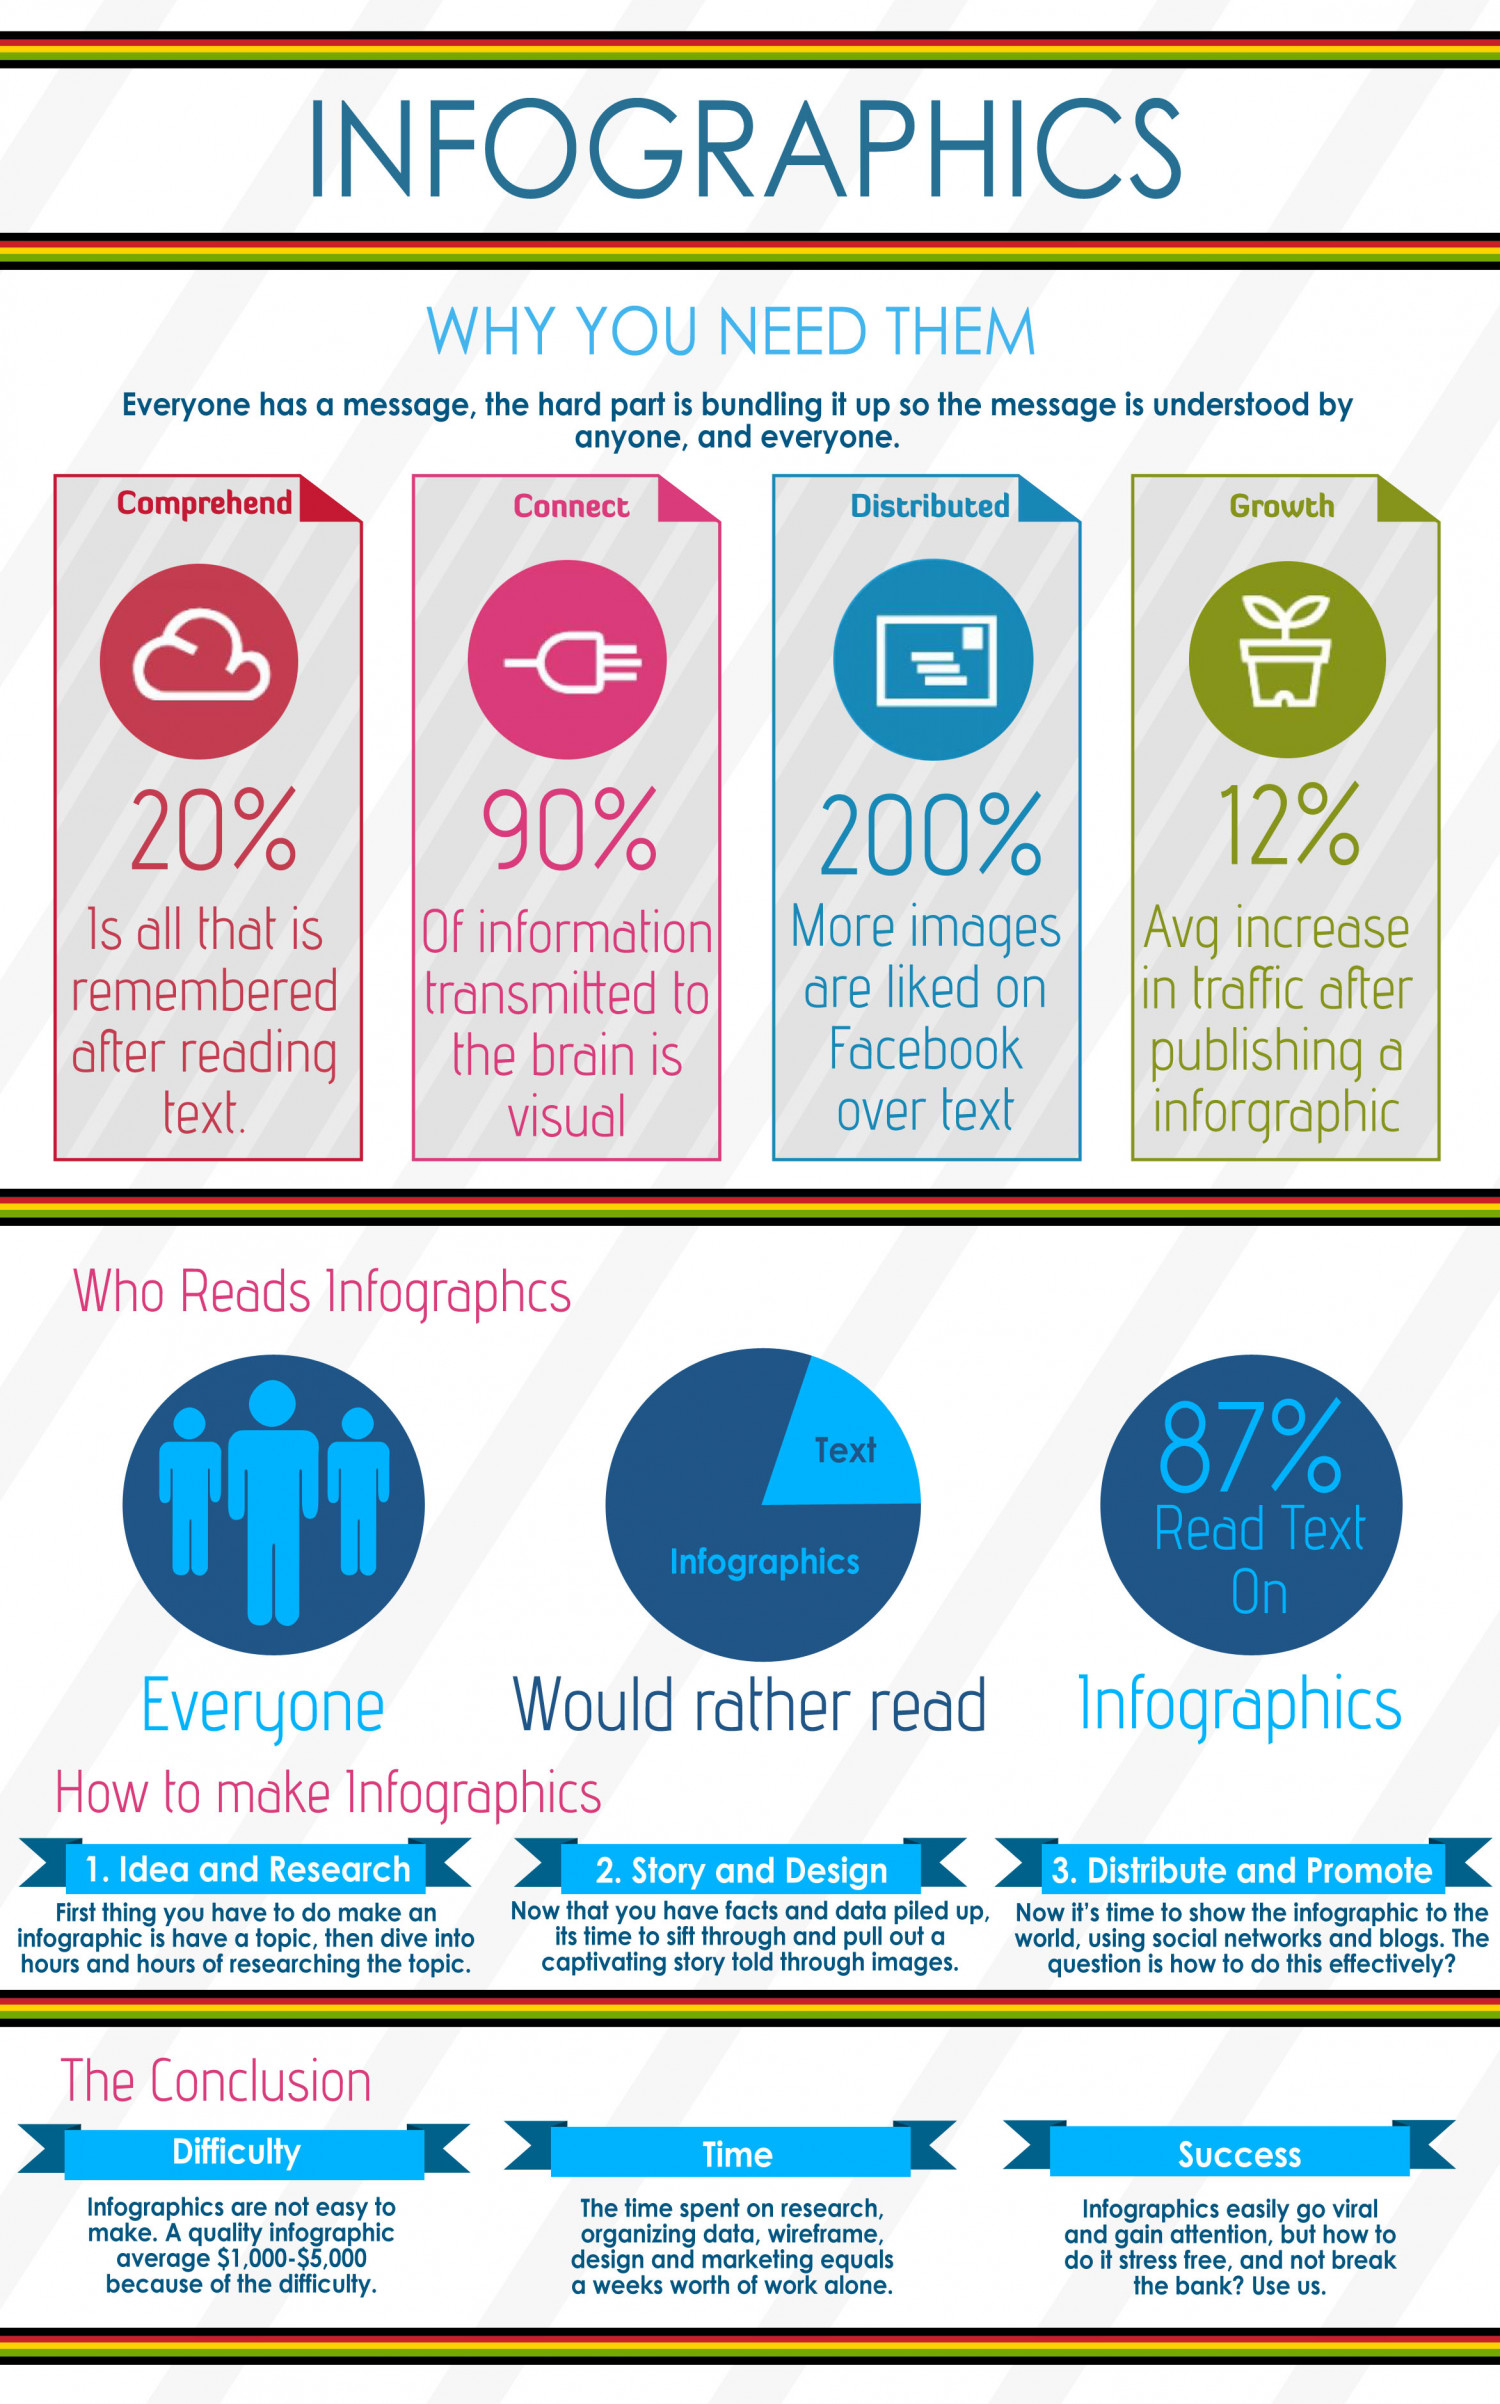 Infographics - Why You Need Them Infographic